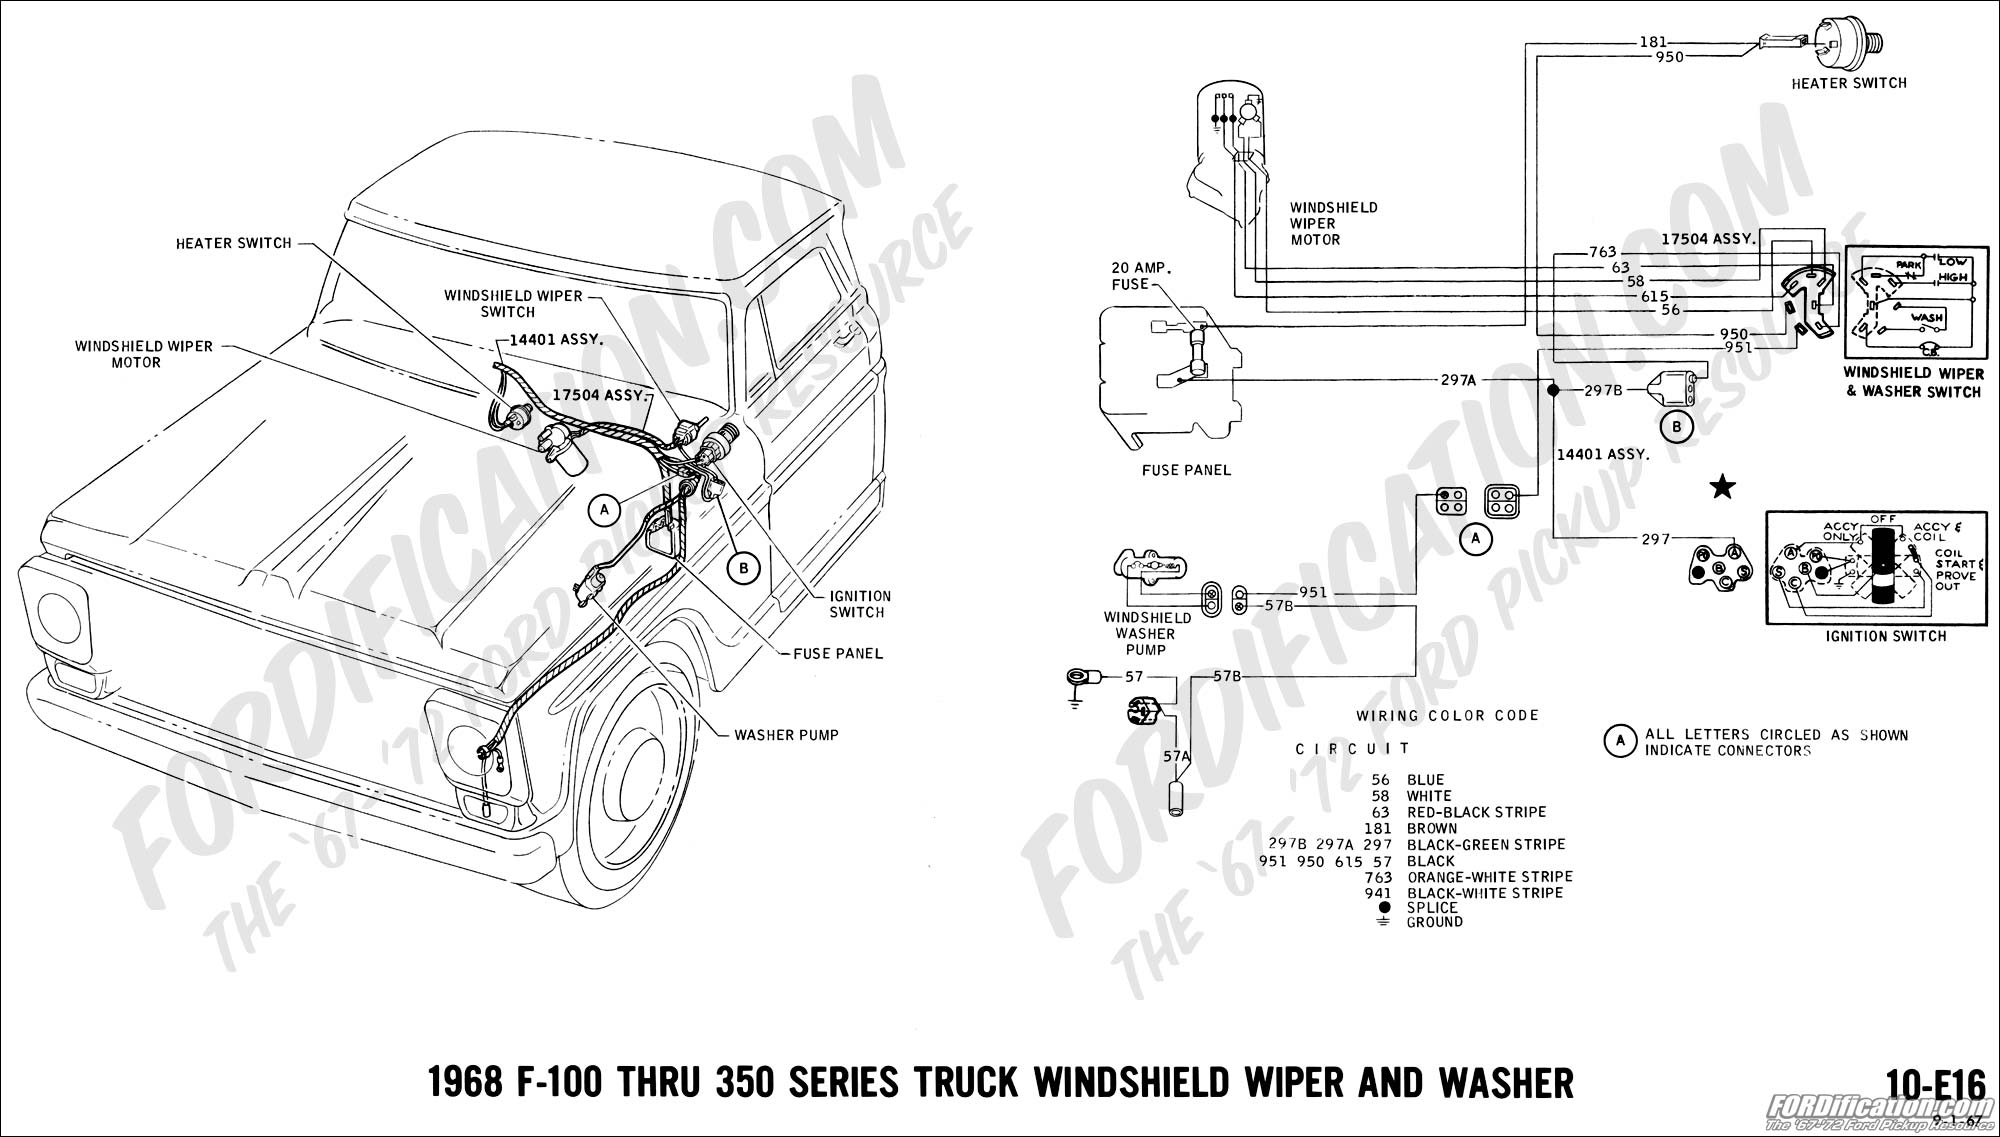 Ford Truck Technical Drawings And Schematics Section H Wiring Panels Further Mazda 3 Fuse Box Location In Addition Circuit Breaker 1968 F 100 Thru 350 Windshield Wiper Washer